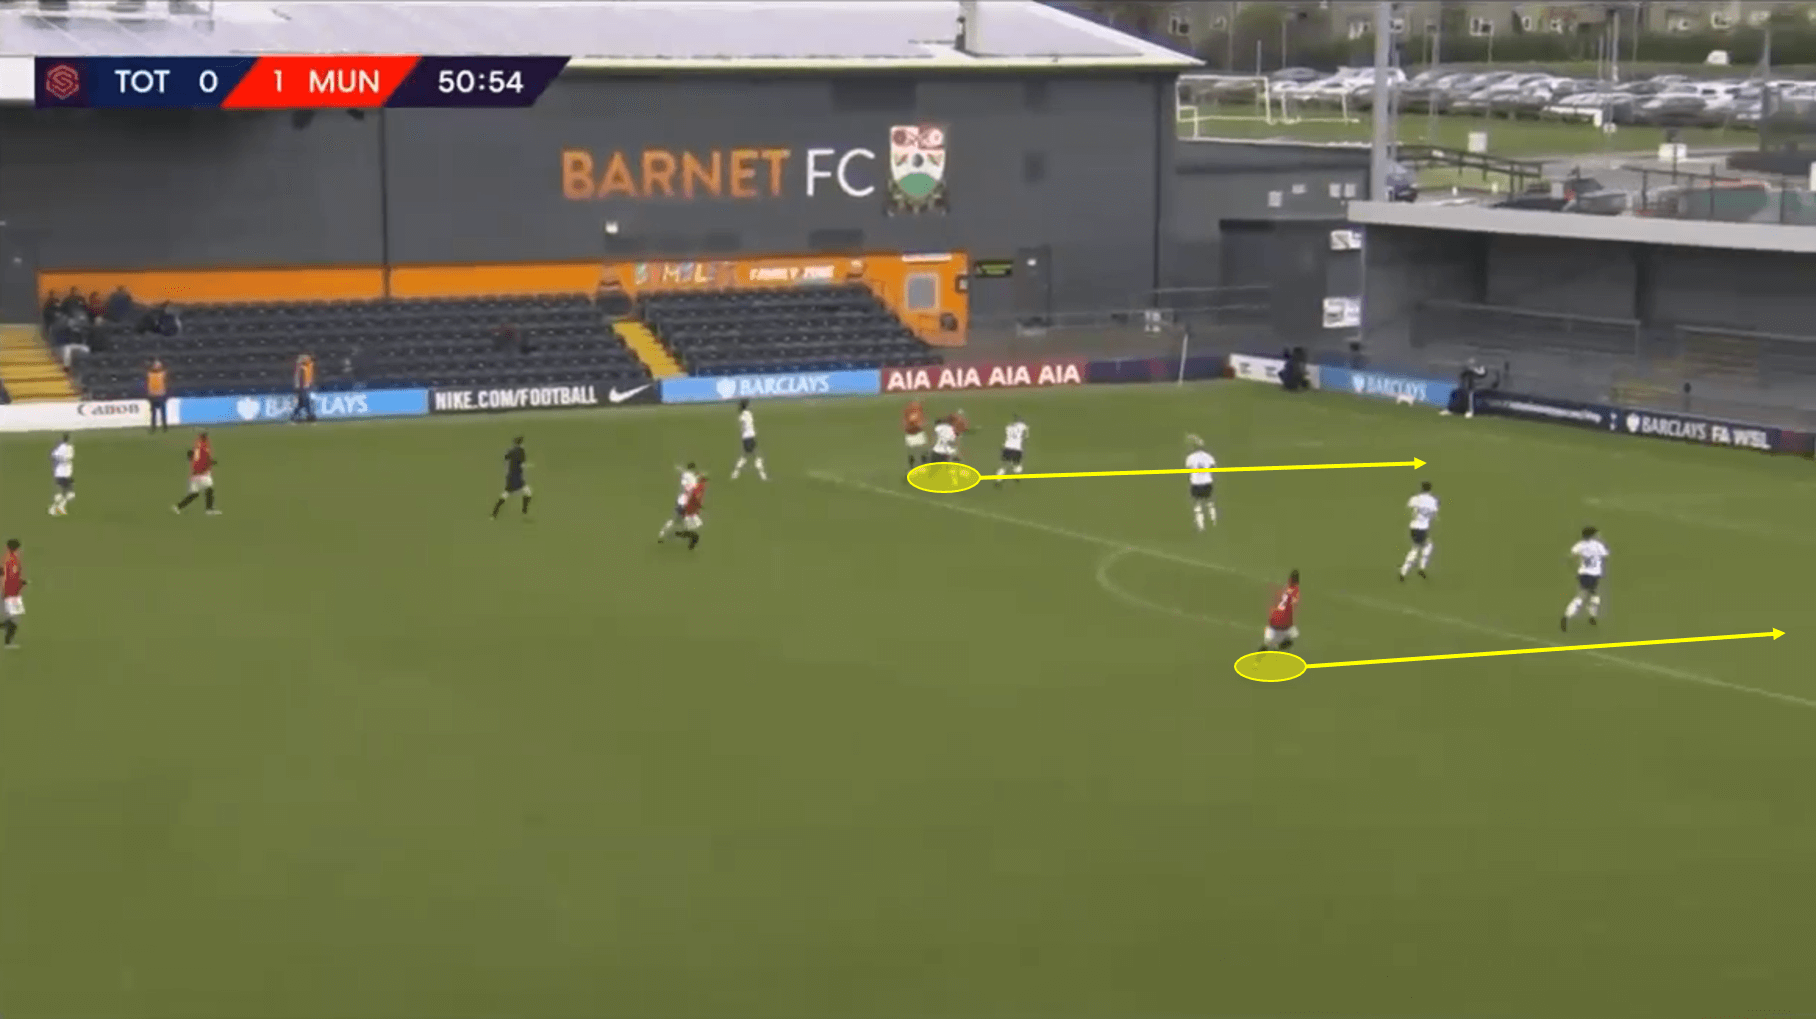 Leah Galton 2019/20 - scout report tactical analysis tactics